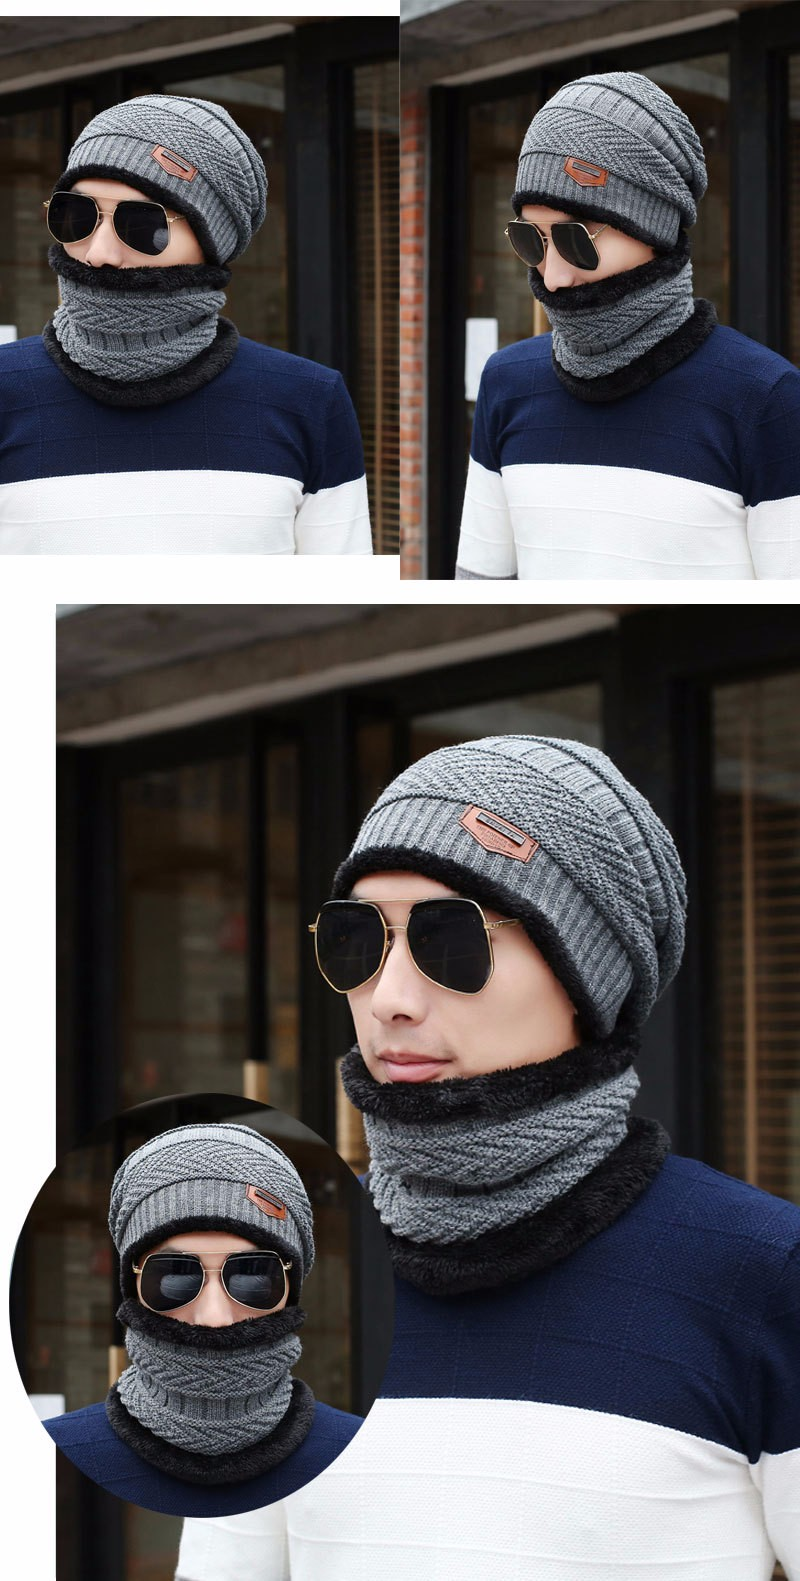 84822008f5b 2017 new Brand Beanies Knit Men  s Winter Hat Caps Skullies Bonnet Winter  Hats For Men Beanie Warm Baggy Knitted Hat and Scarf